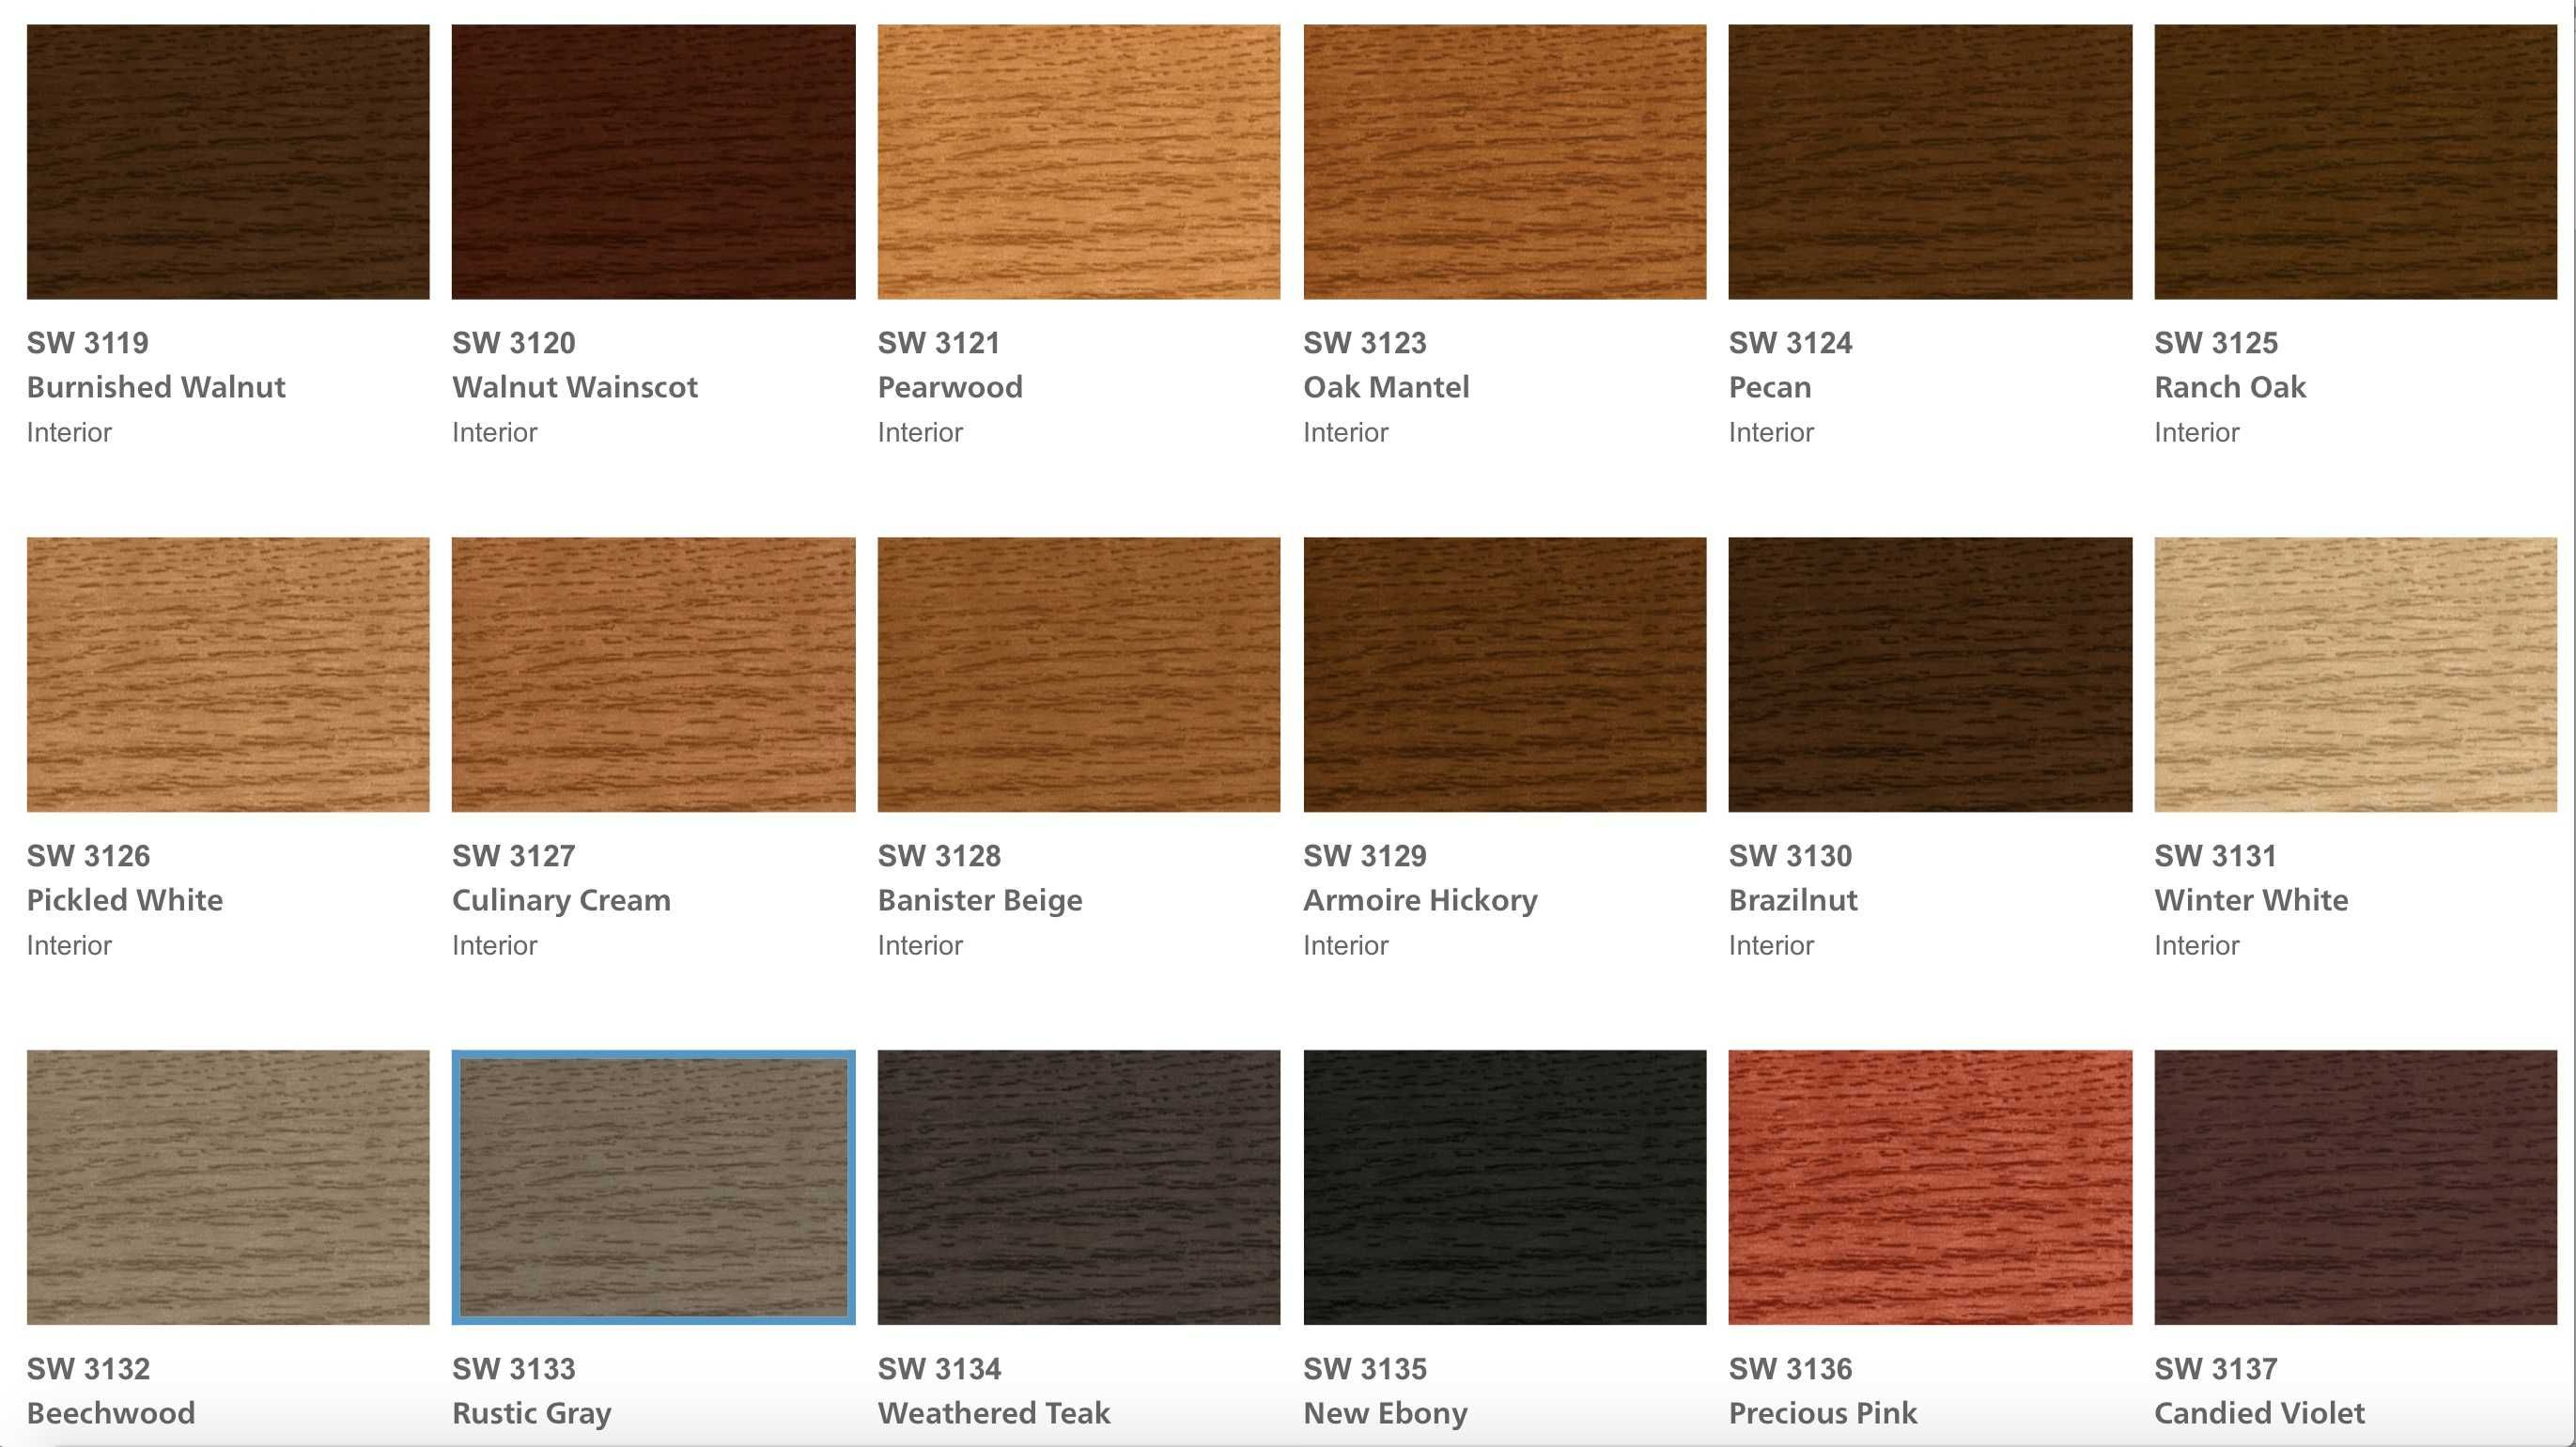 Luxurius sherwin williams deck stain colors caption id   align aligncenter more choices color option for also pin by rhodes hardwood flooring on rh pinterest